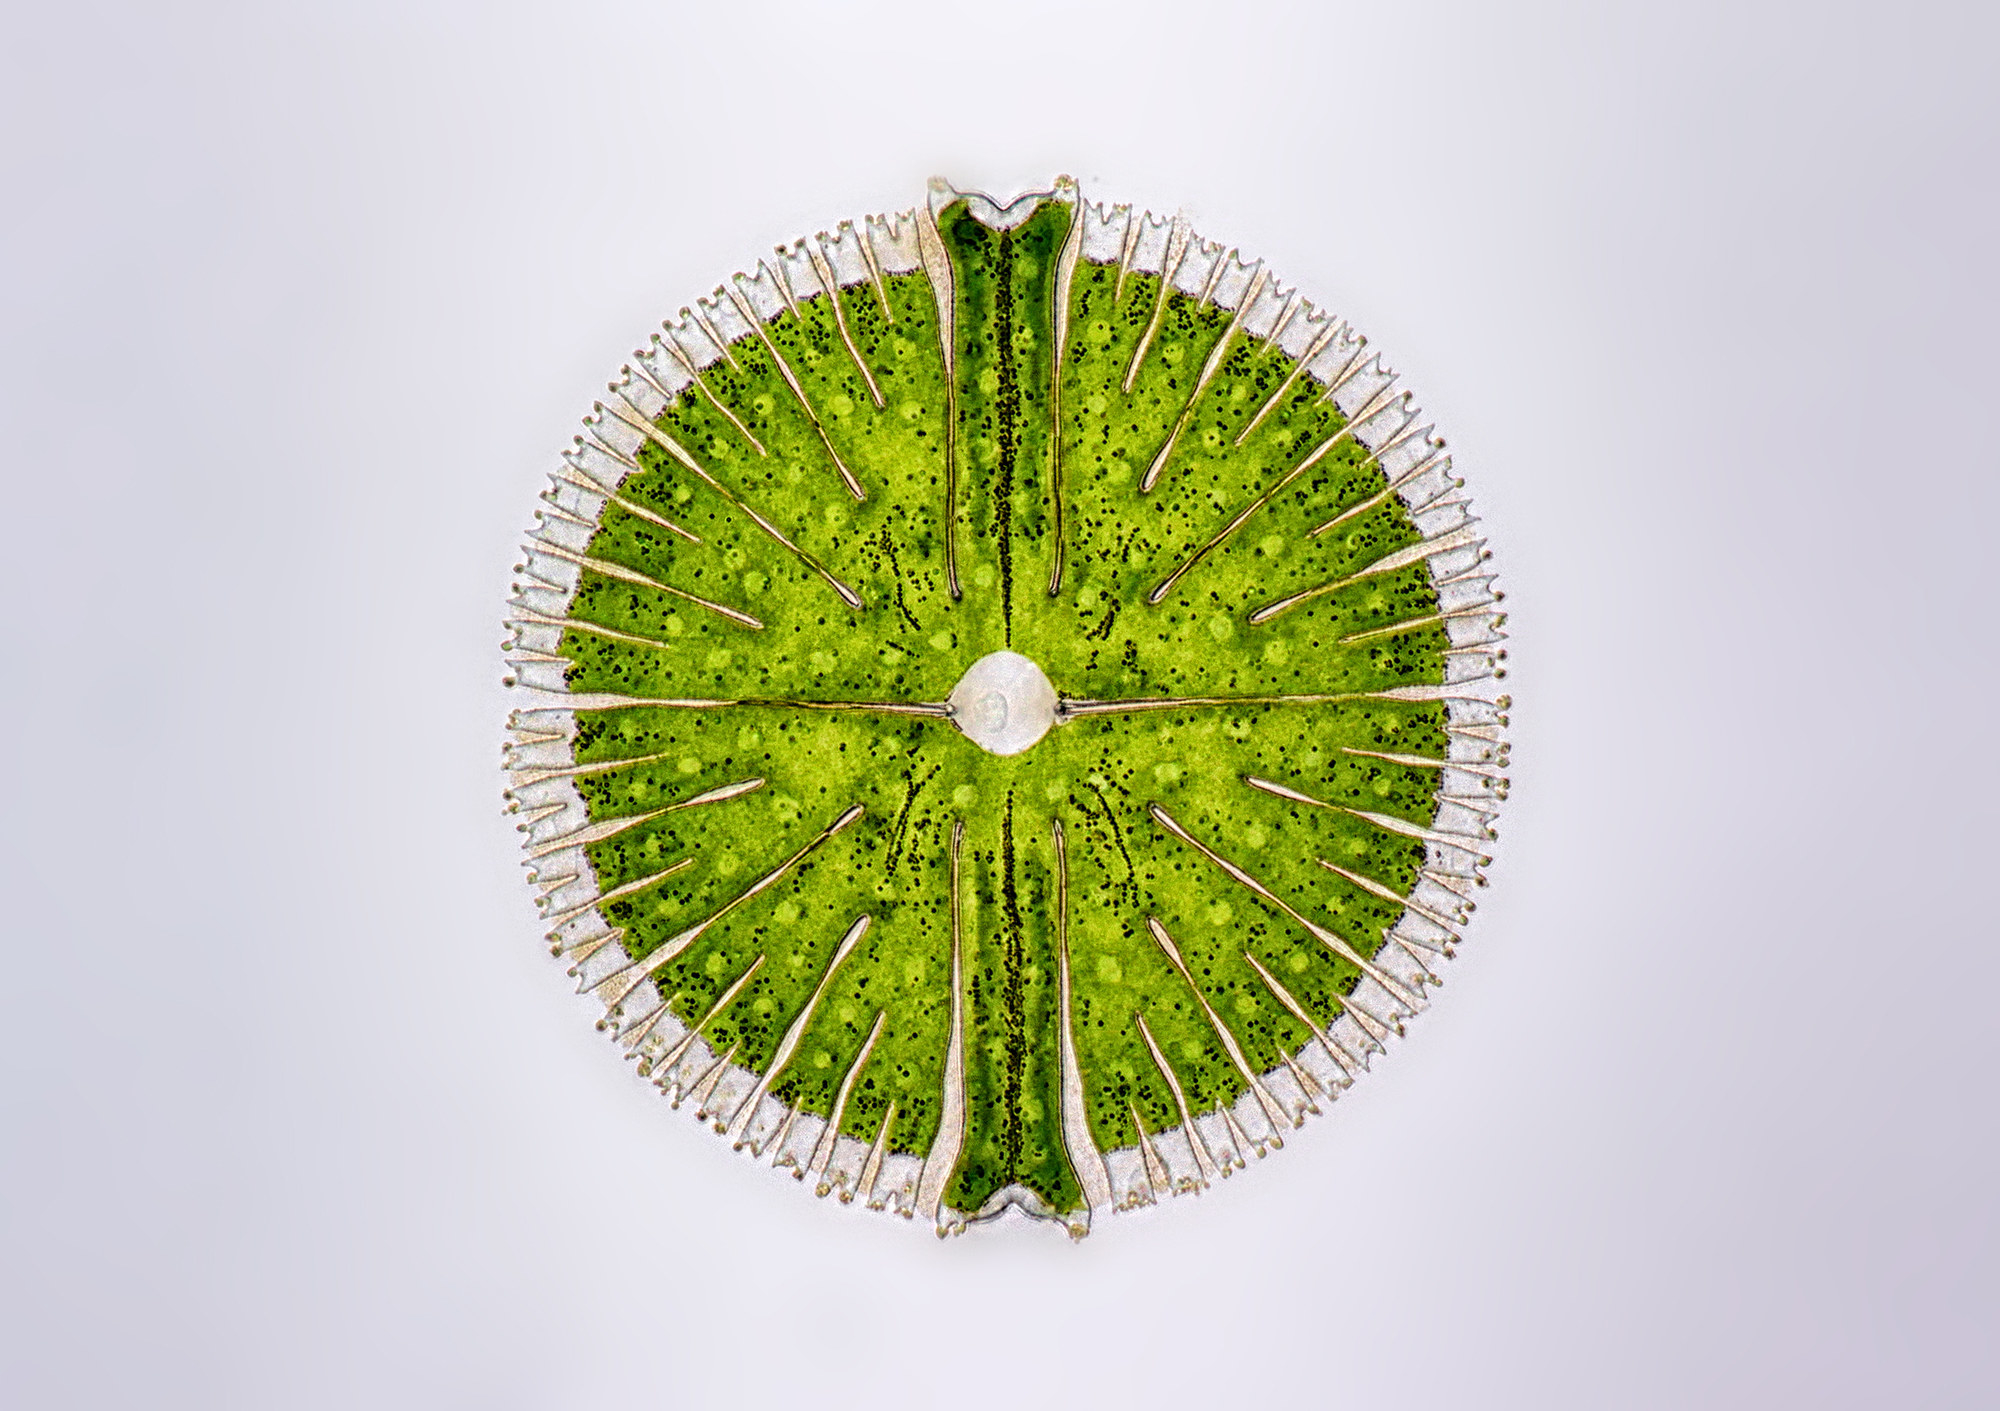 A small green cell of an algae plant, on a white background, magnified many times